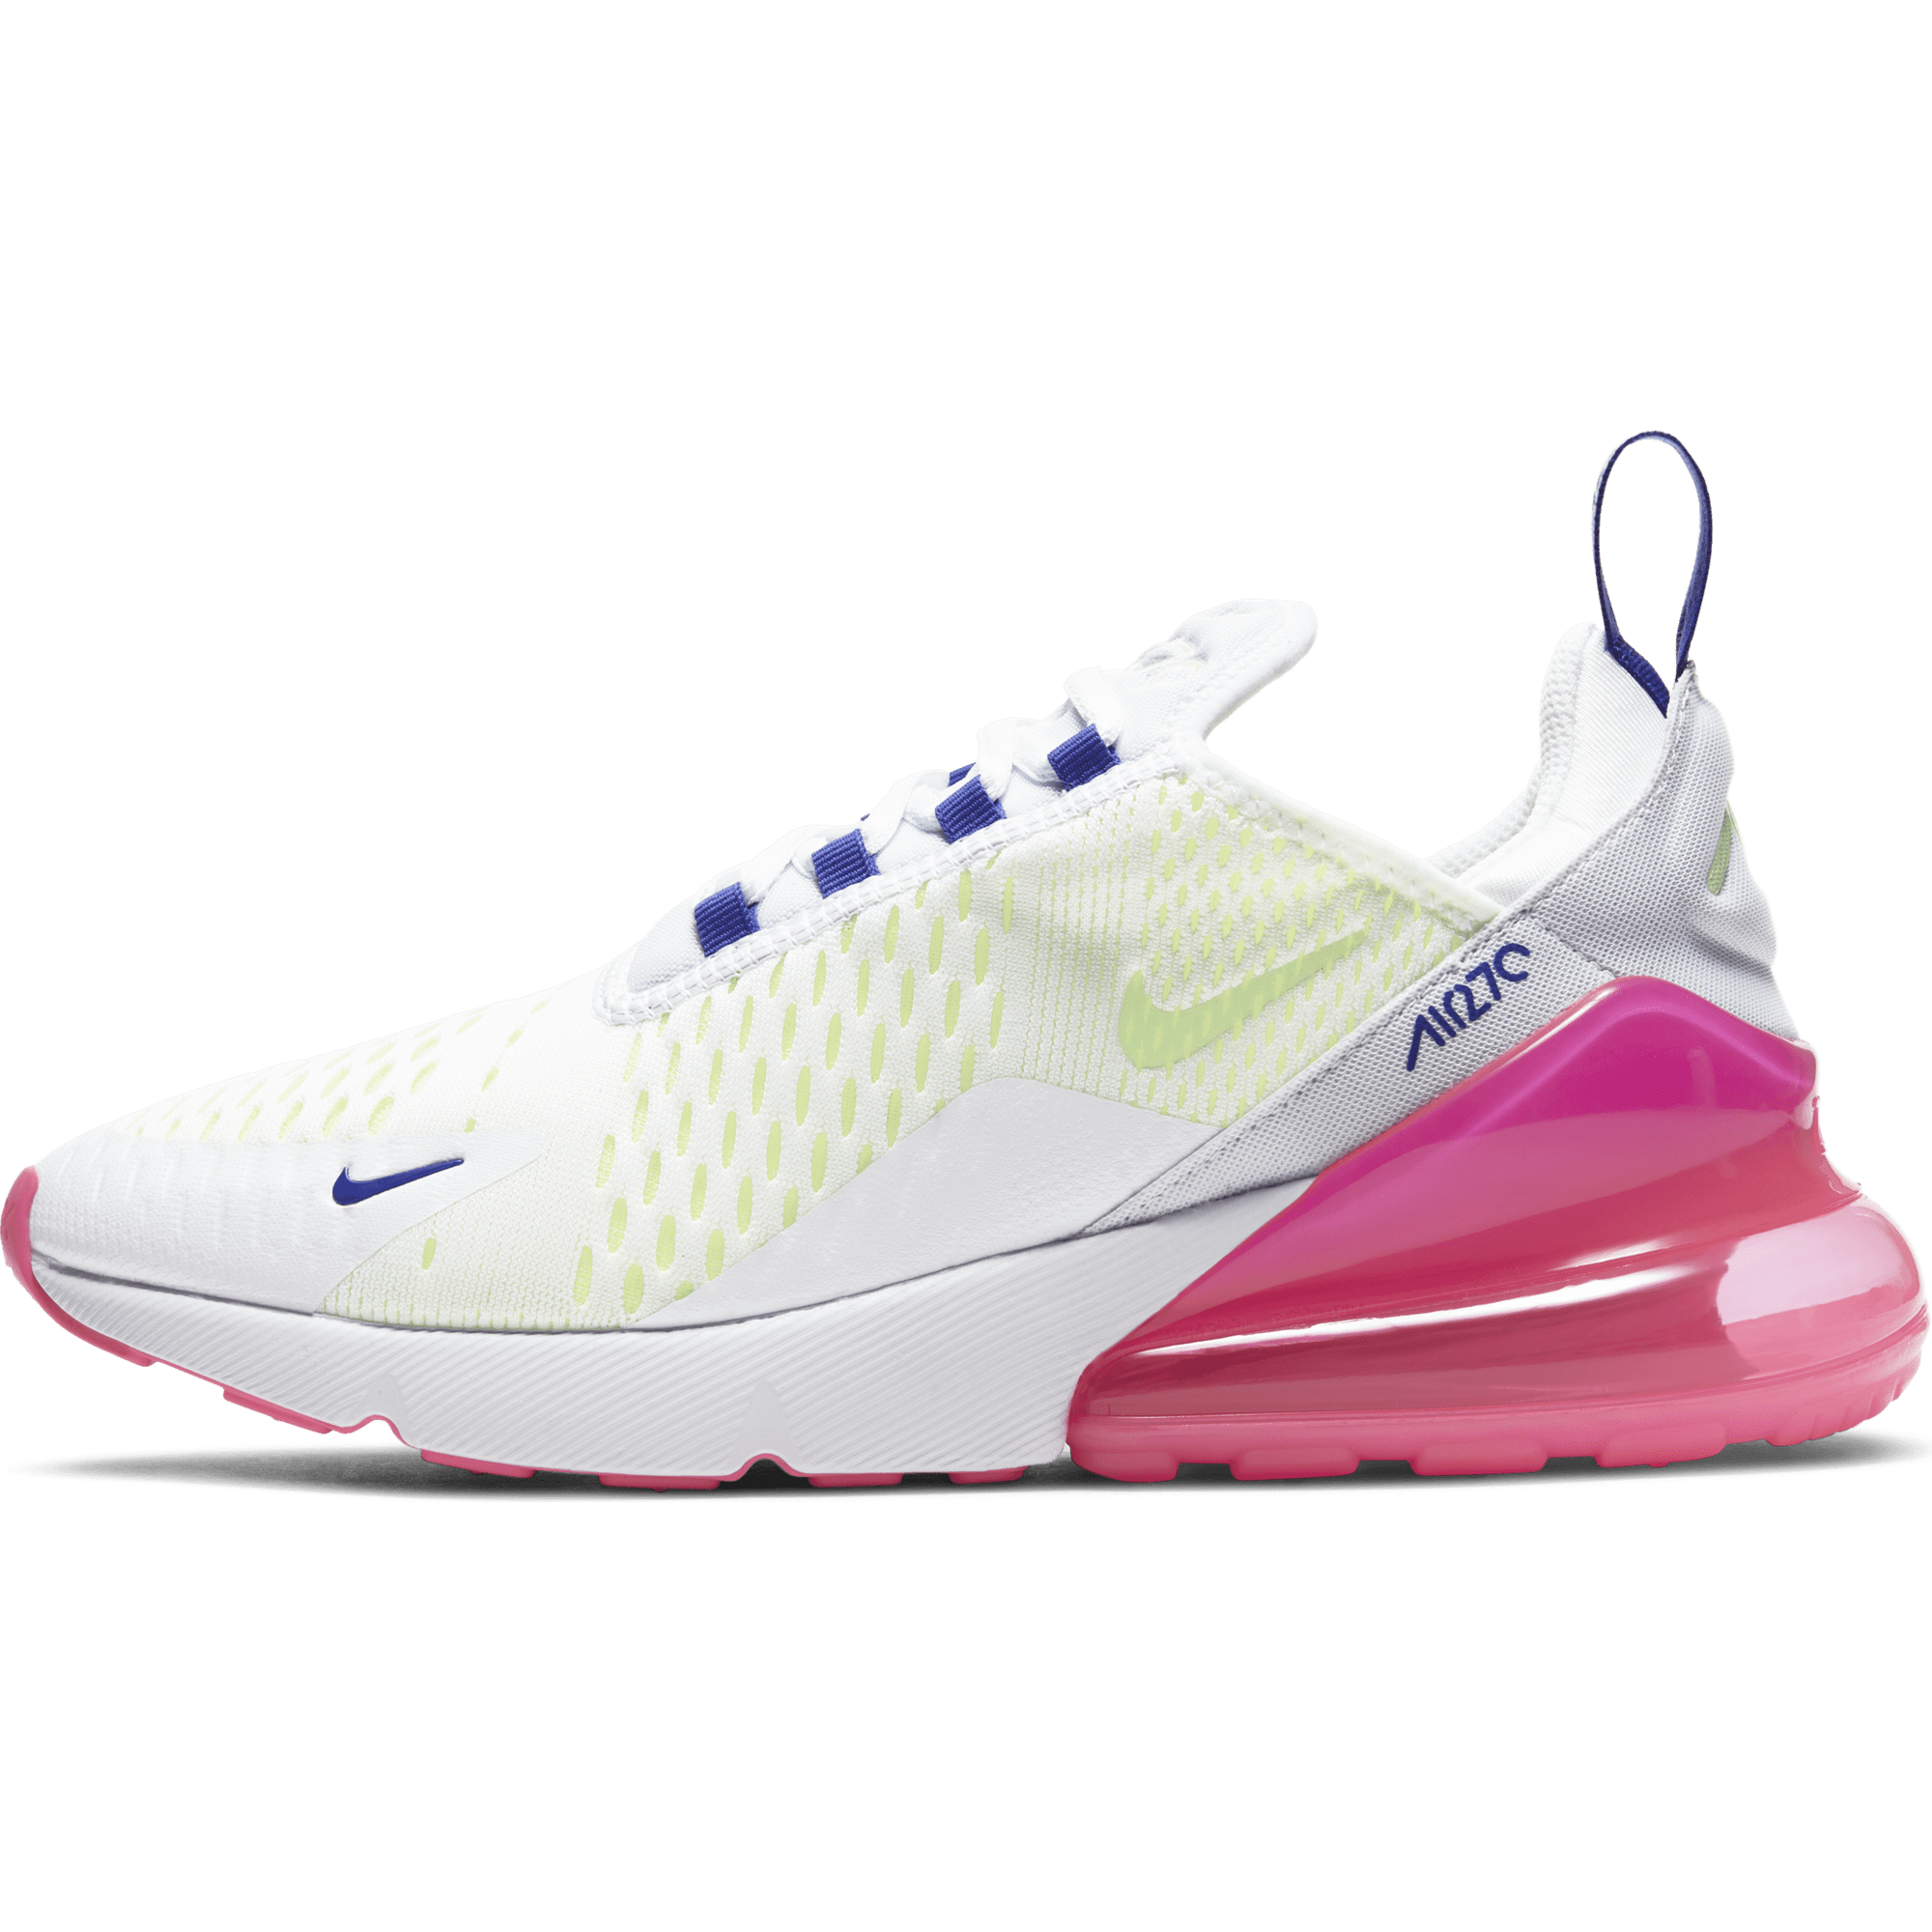 Nike FOOTWEAR Nike Air Max 270 - Women's